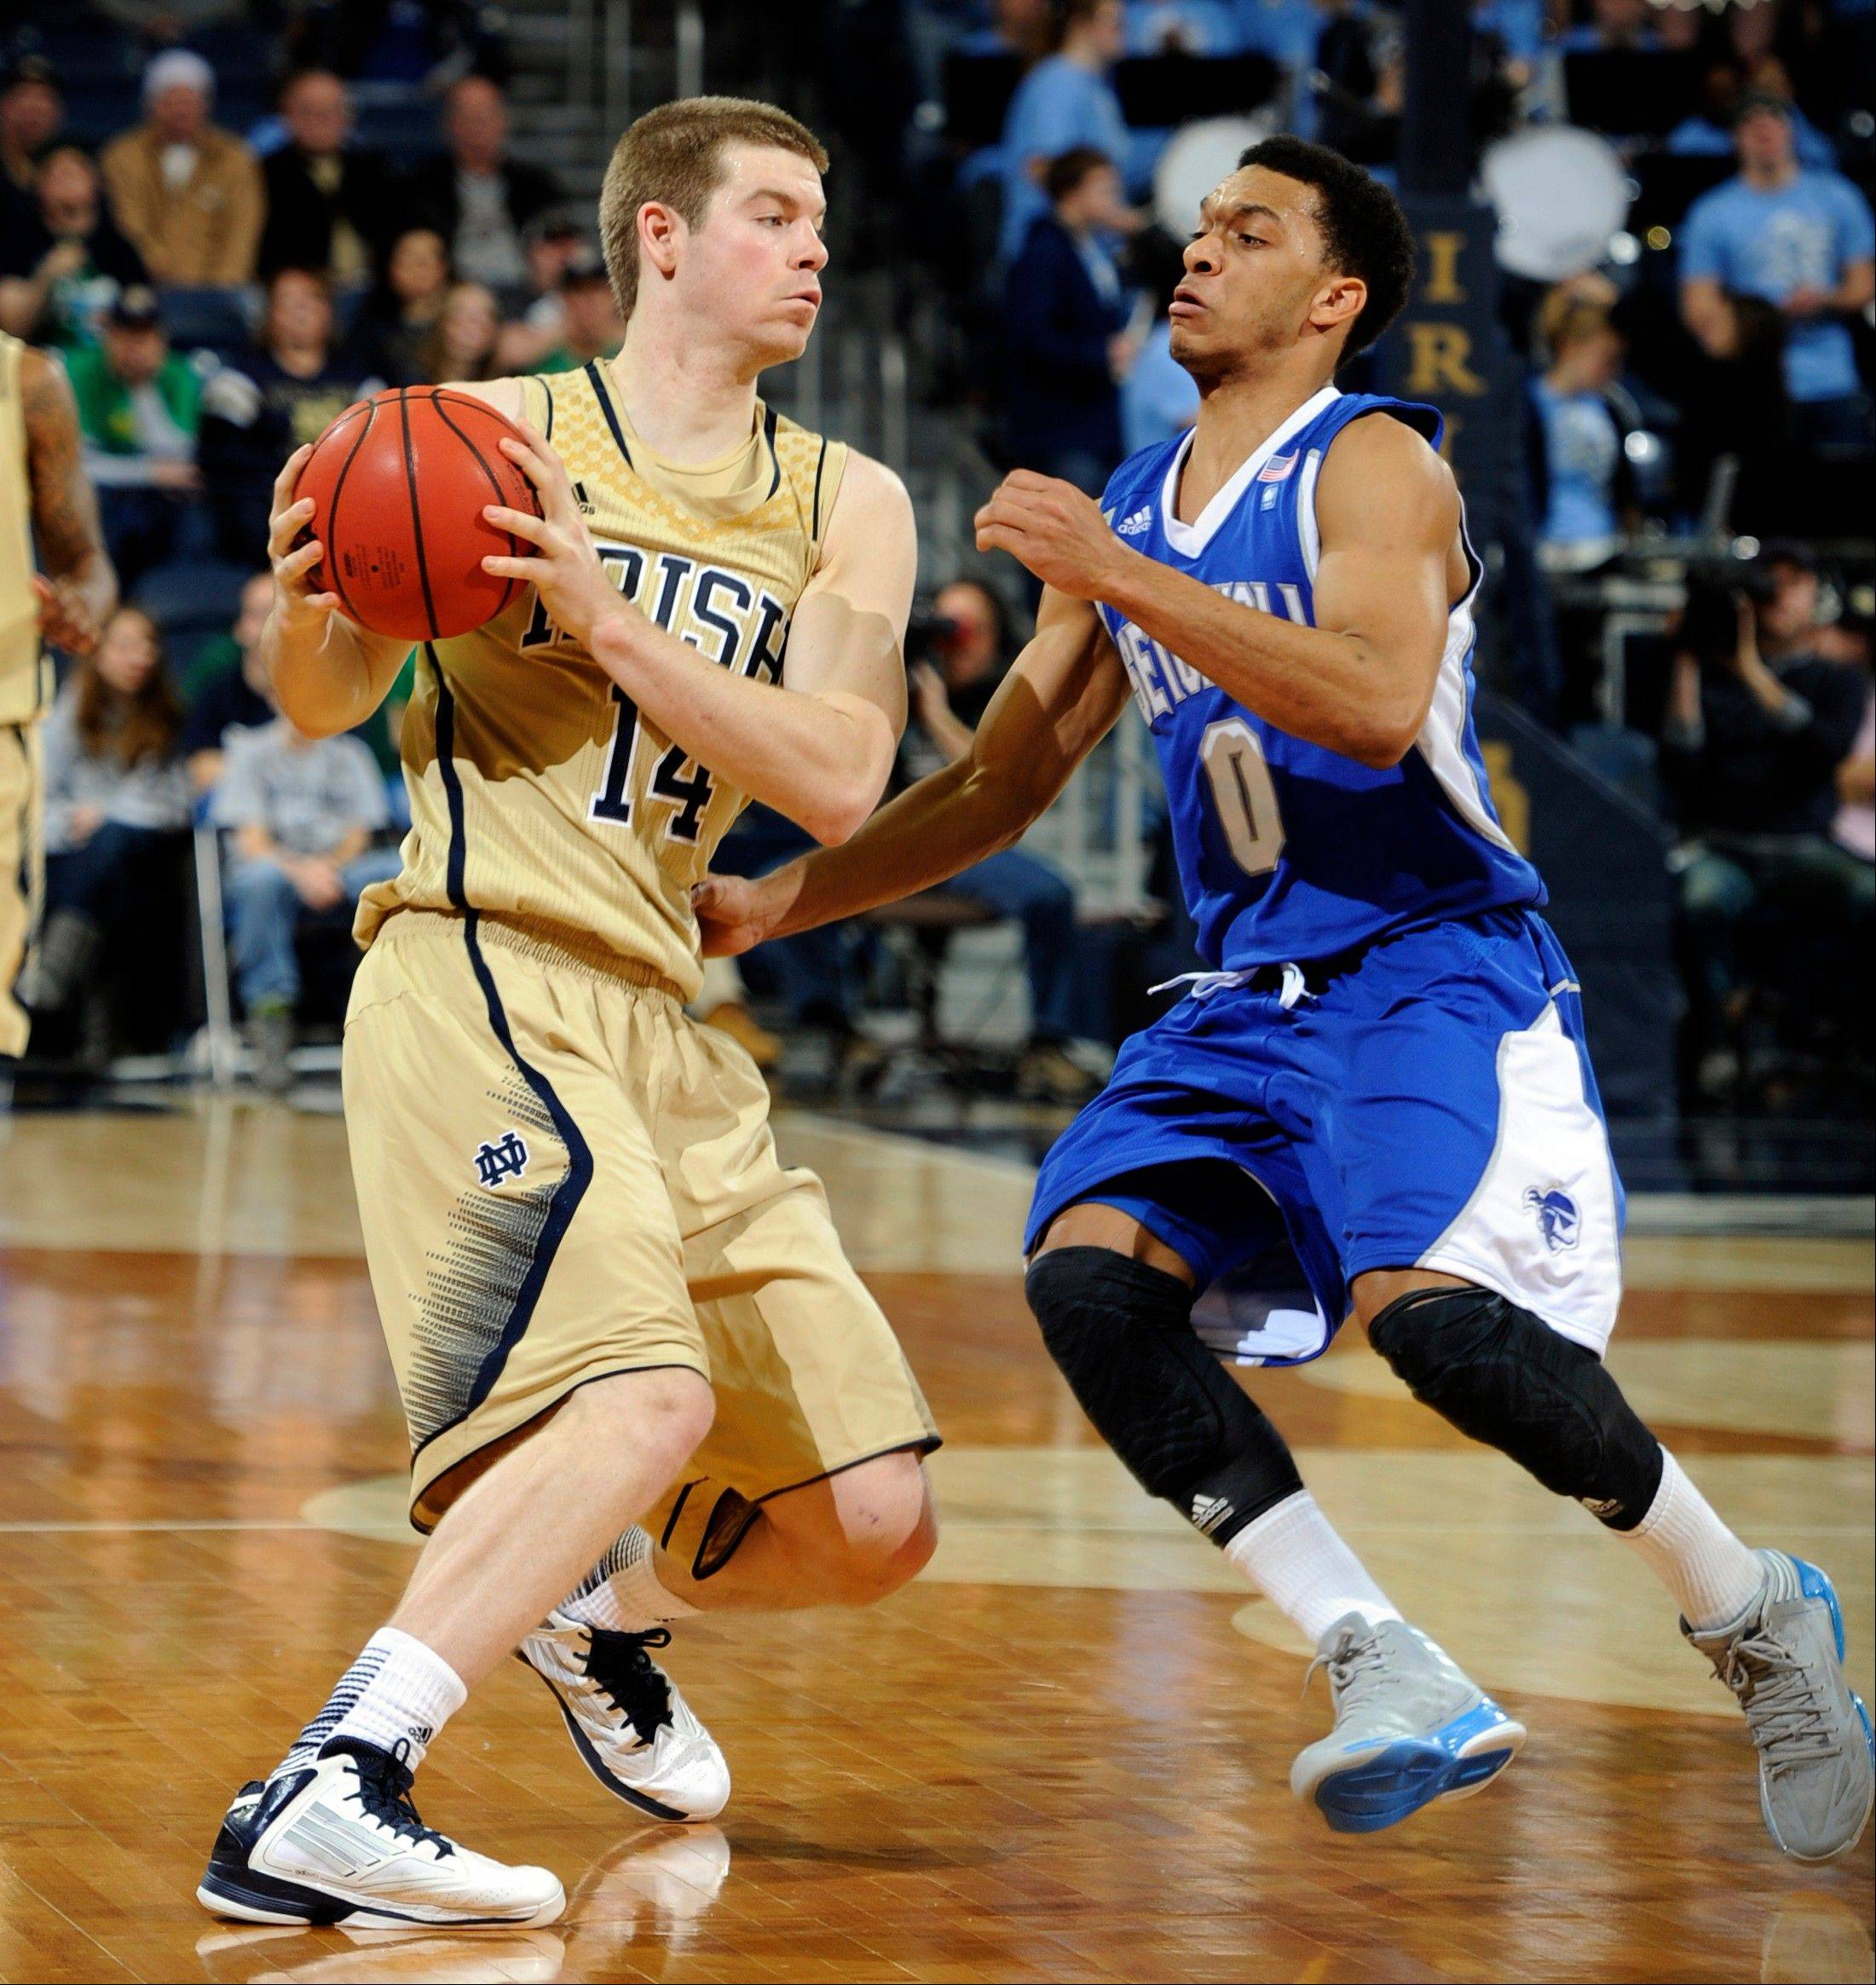 Notre Dame guard Scott Martin, left, gets ready to shoot as Seton Hall guard Tom Maayan defends the second half of an NCAA college basketball game wth Notre Dame Saturday, Jan. 5, 2013, in South Bend, Ind. Notre Dame won 93-74 with Martin leading all scorers with 22 points.